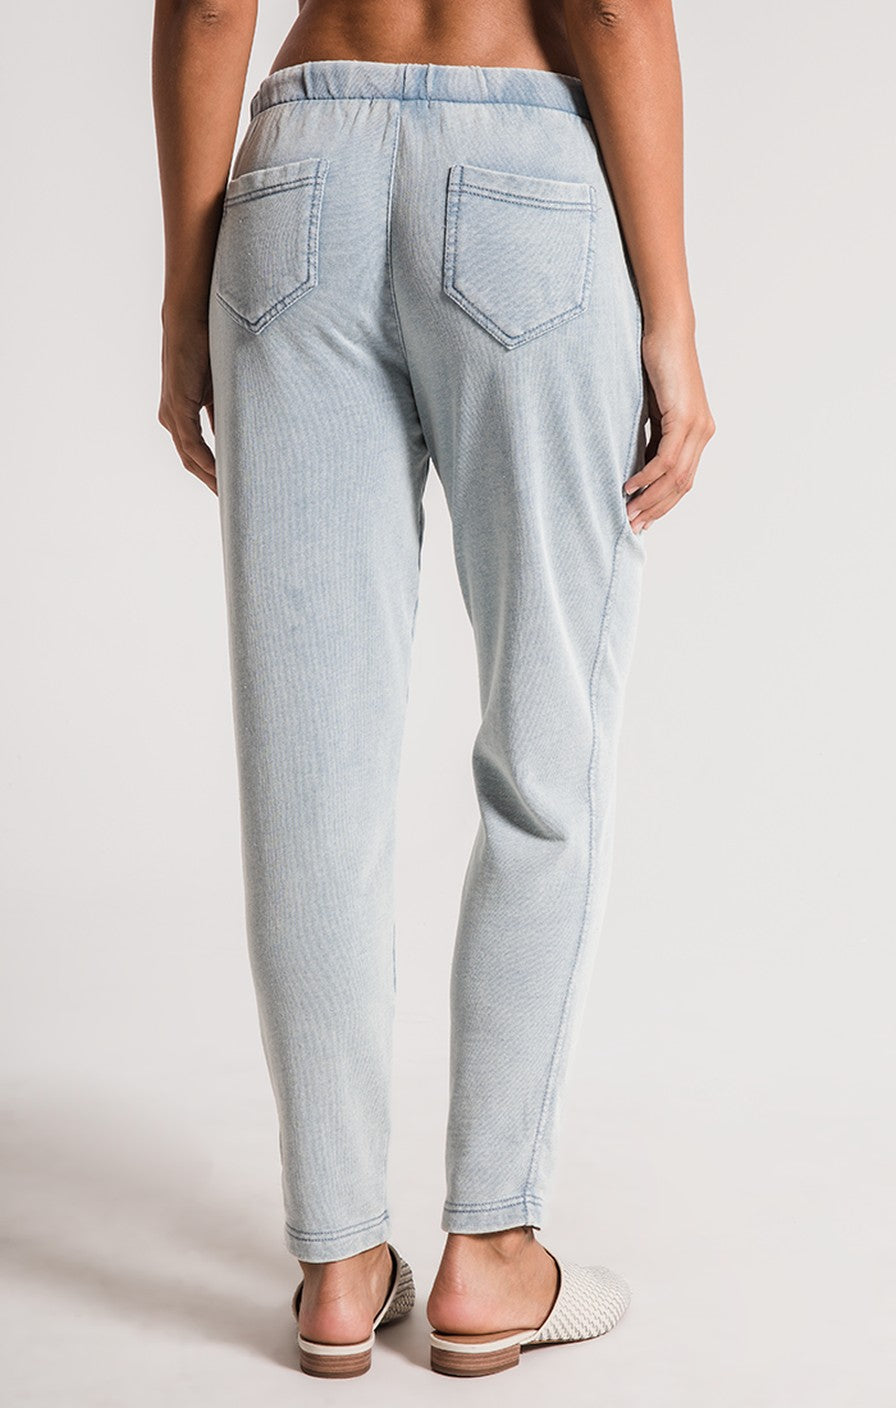 Z Supply Knit Denim Jogger ZP191611